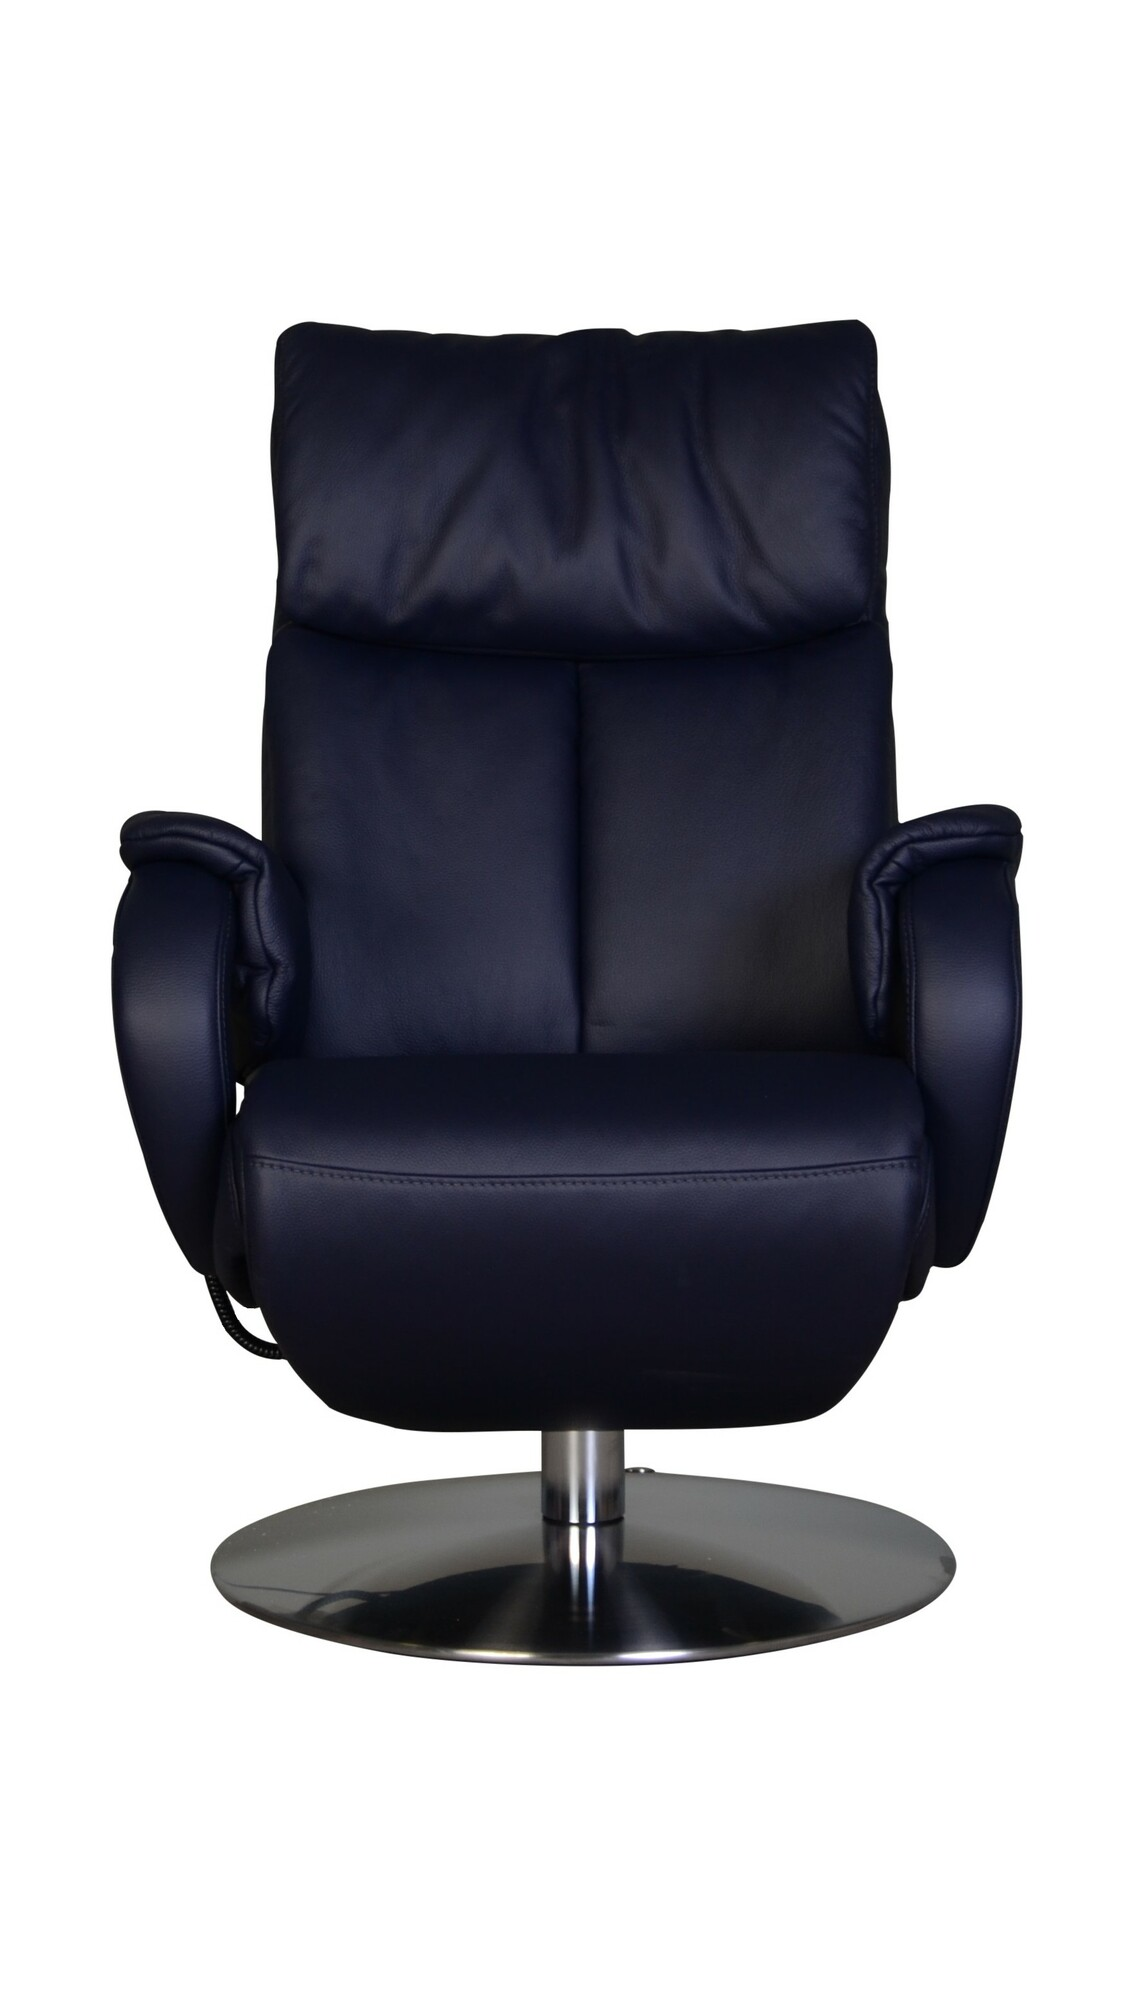 Relaxfauteuil Carmel Donkerblauw